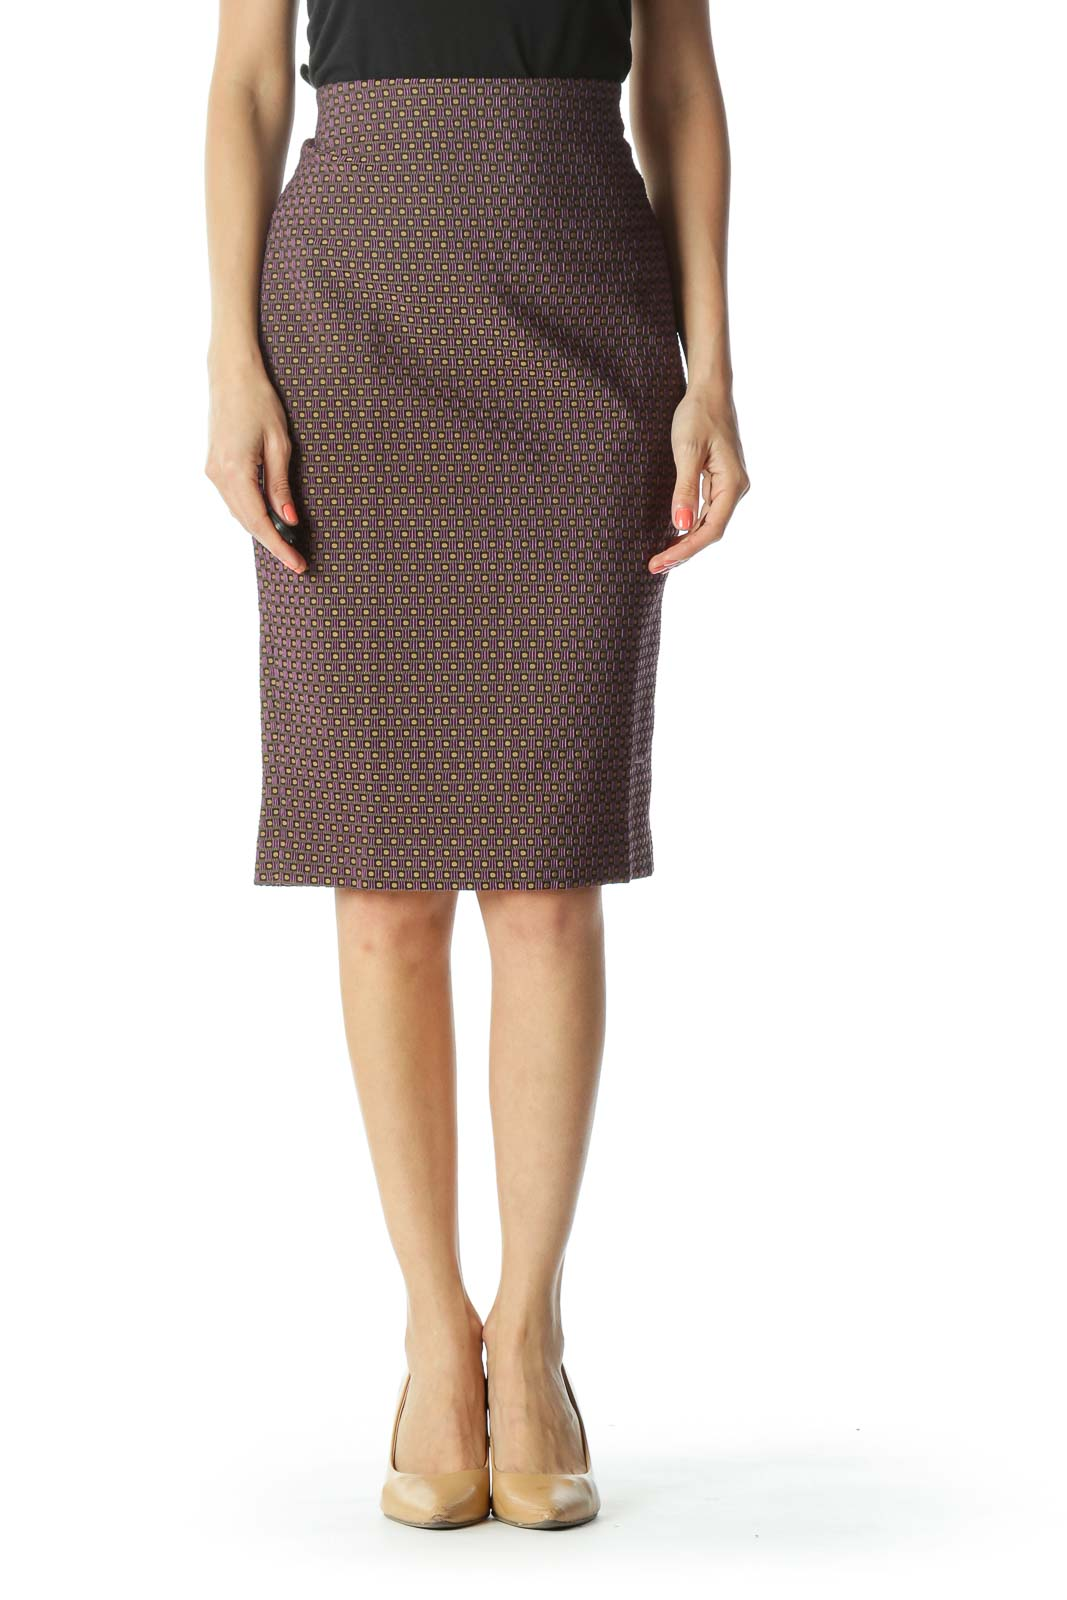 Purple/Gold/Black Textured-Geometric-Pattern Pencil Skirt with Slit and Elastic-Waist-Band